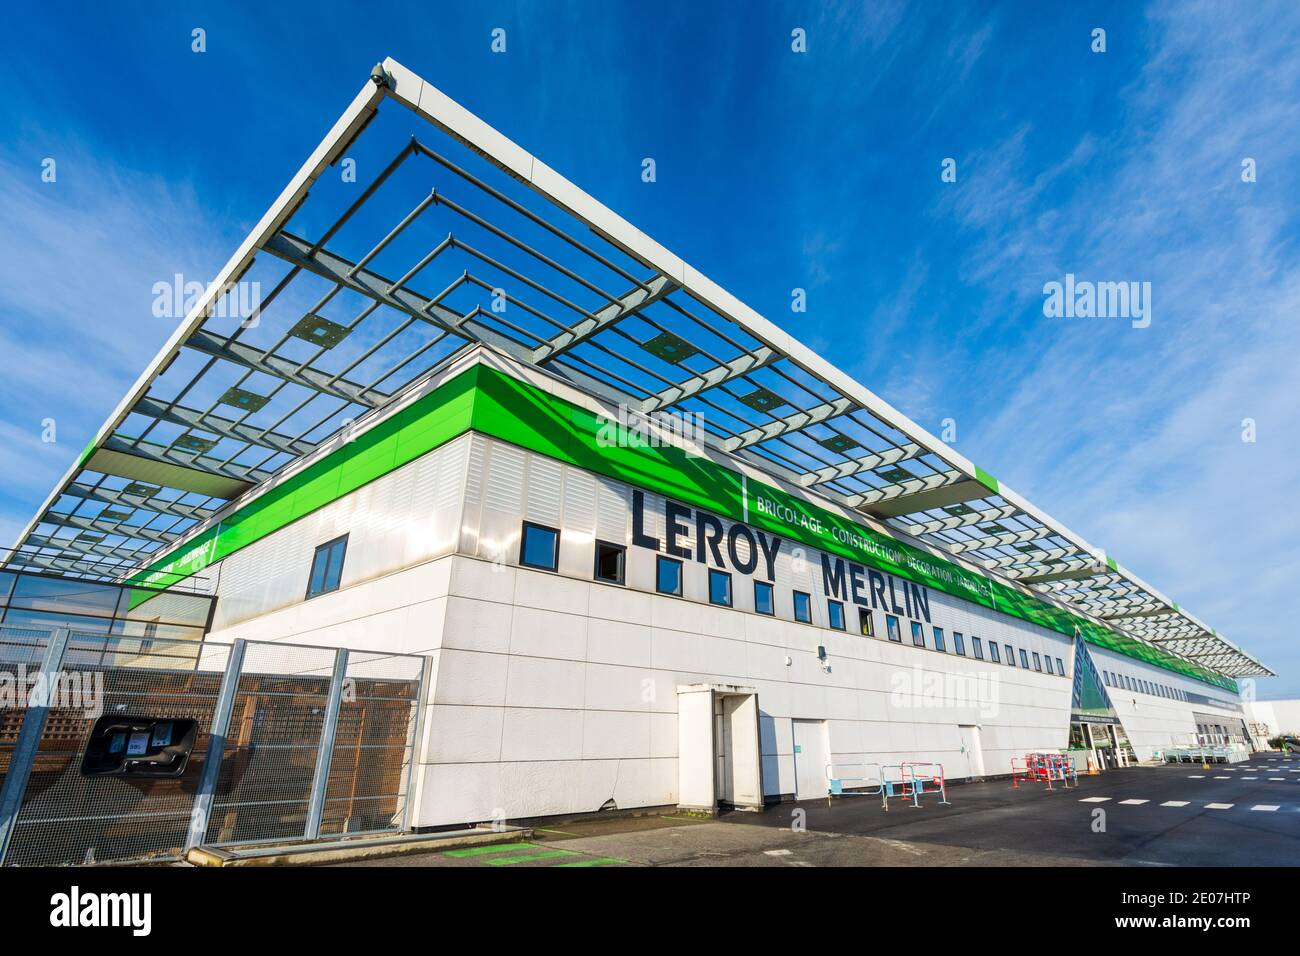 Bois D Arcy France December 30 2020 Exterior View Of A Leroy Merlin Store An International French Retail Company Specializing In Diy Stock Photo Alamy